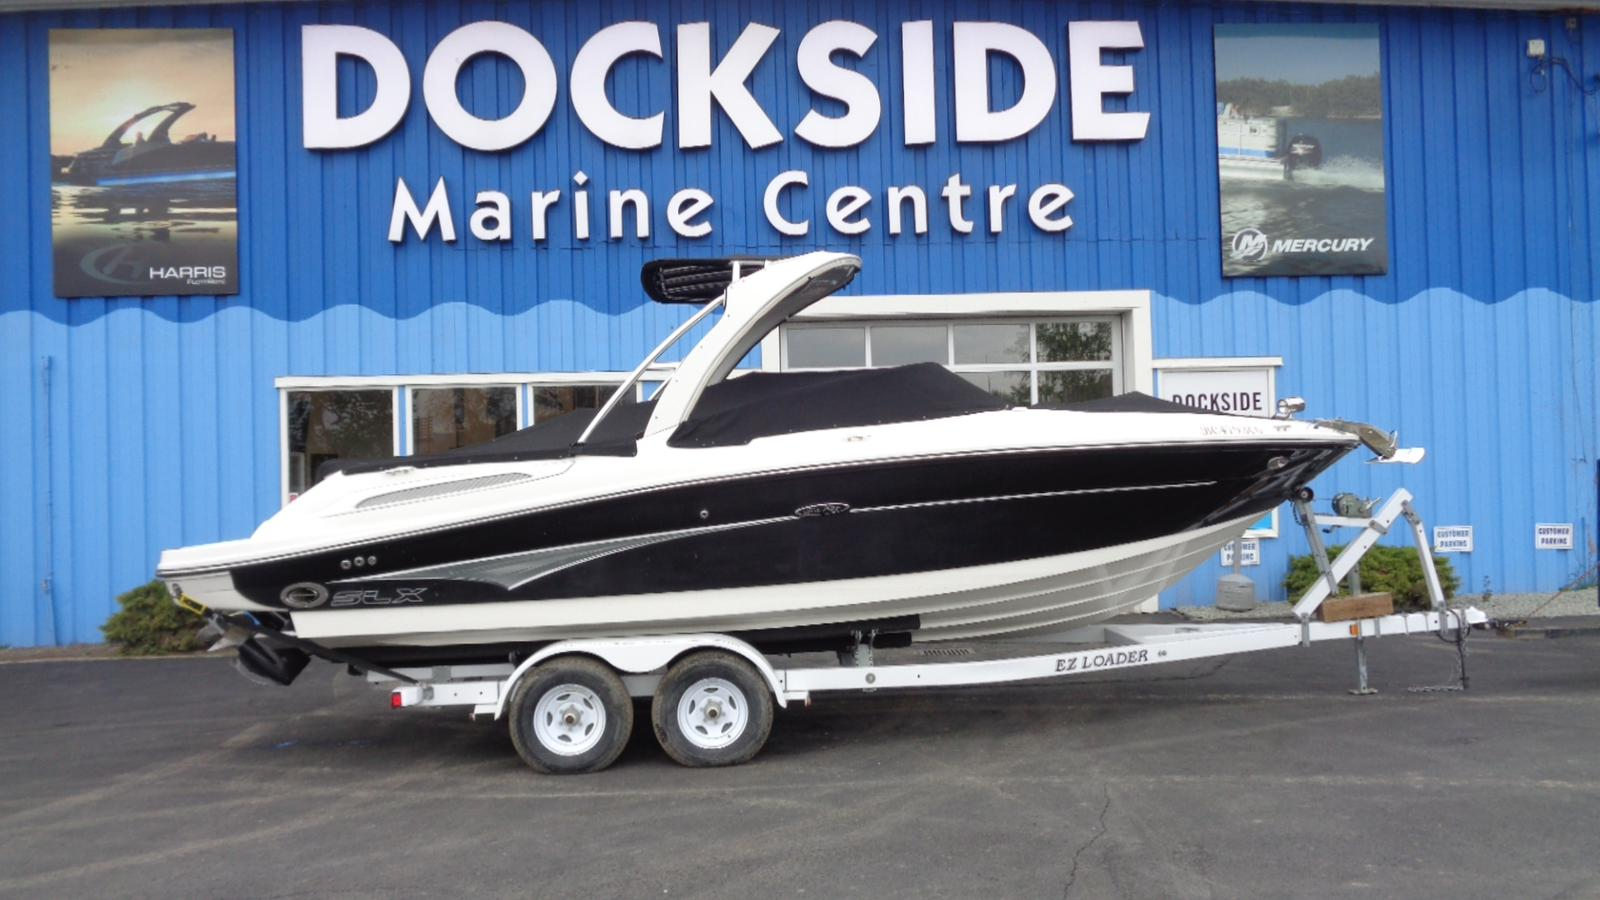 For Sale: 2007 Sea Ray Slx 250 26ft<br/>Dockside Marine Centre, LTD.